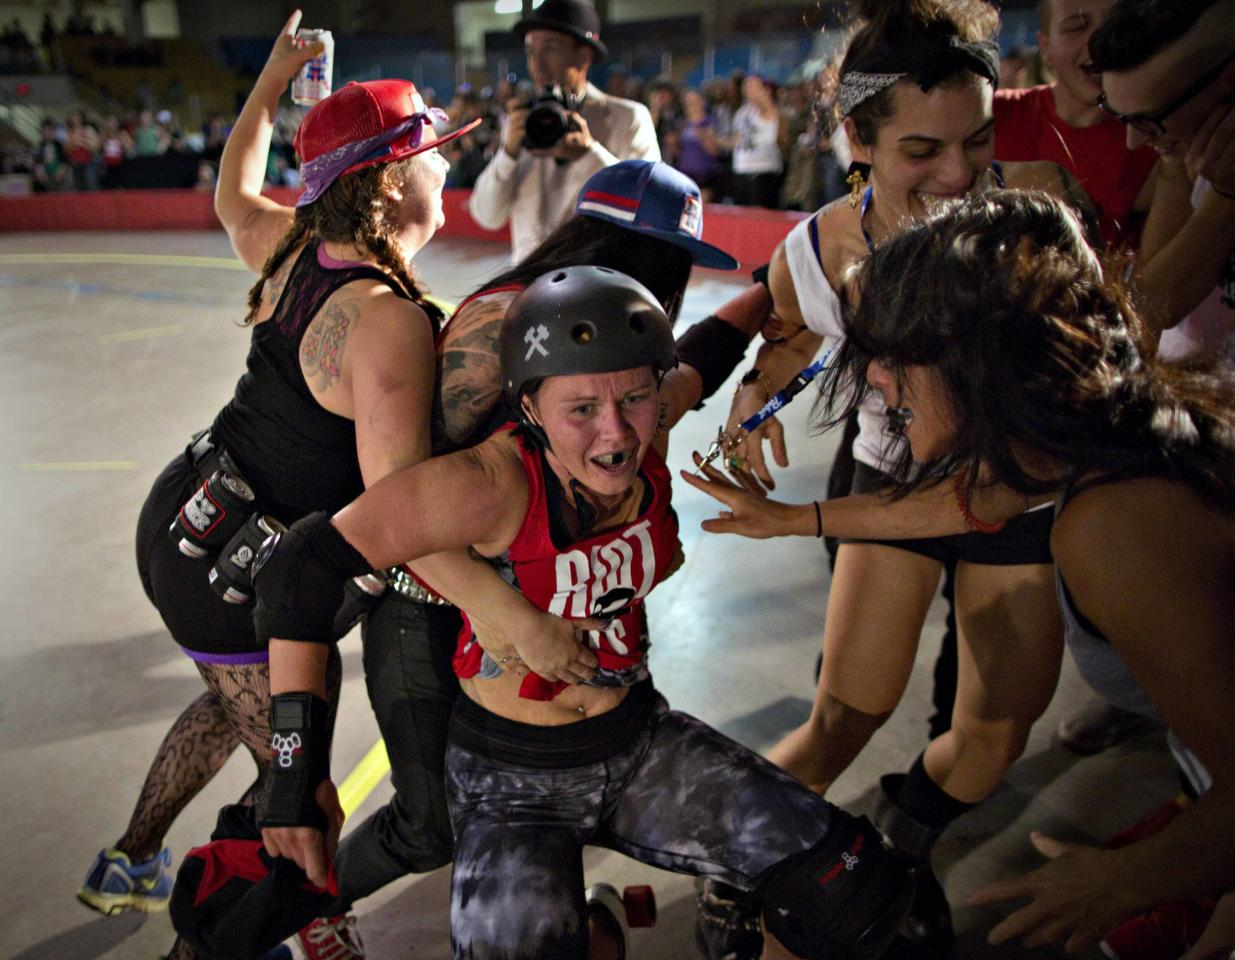 """A player known as """"Justine TimberSkate"""" is mobbed by fans in the closing moments of the Terminal City Rollergirls league championship game in Vancouver, British Columbia September 7, 2013. TimberSkate and her teammates, known as the Riot Girls, won the 2013 championship. REUTERS/Andy Clark (CANADA - Tags: SPORT SOCIETY TPX IMAGES OF THE DAY)"""